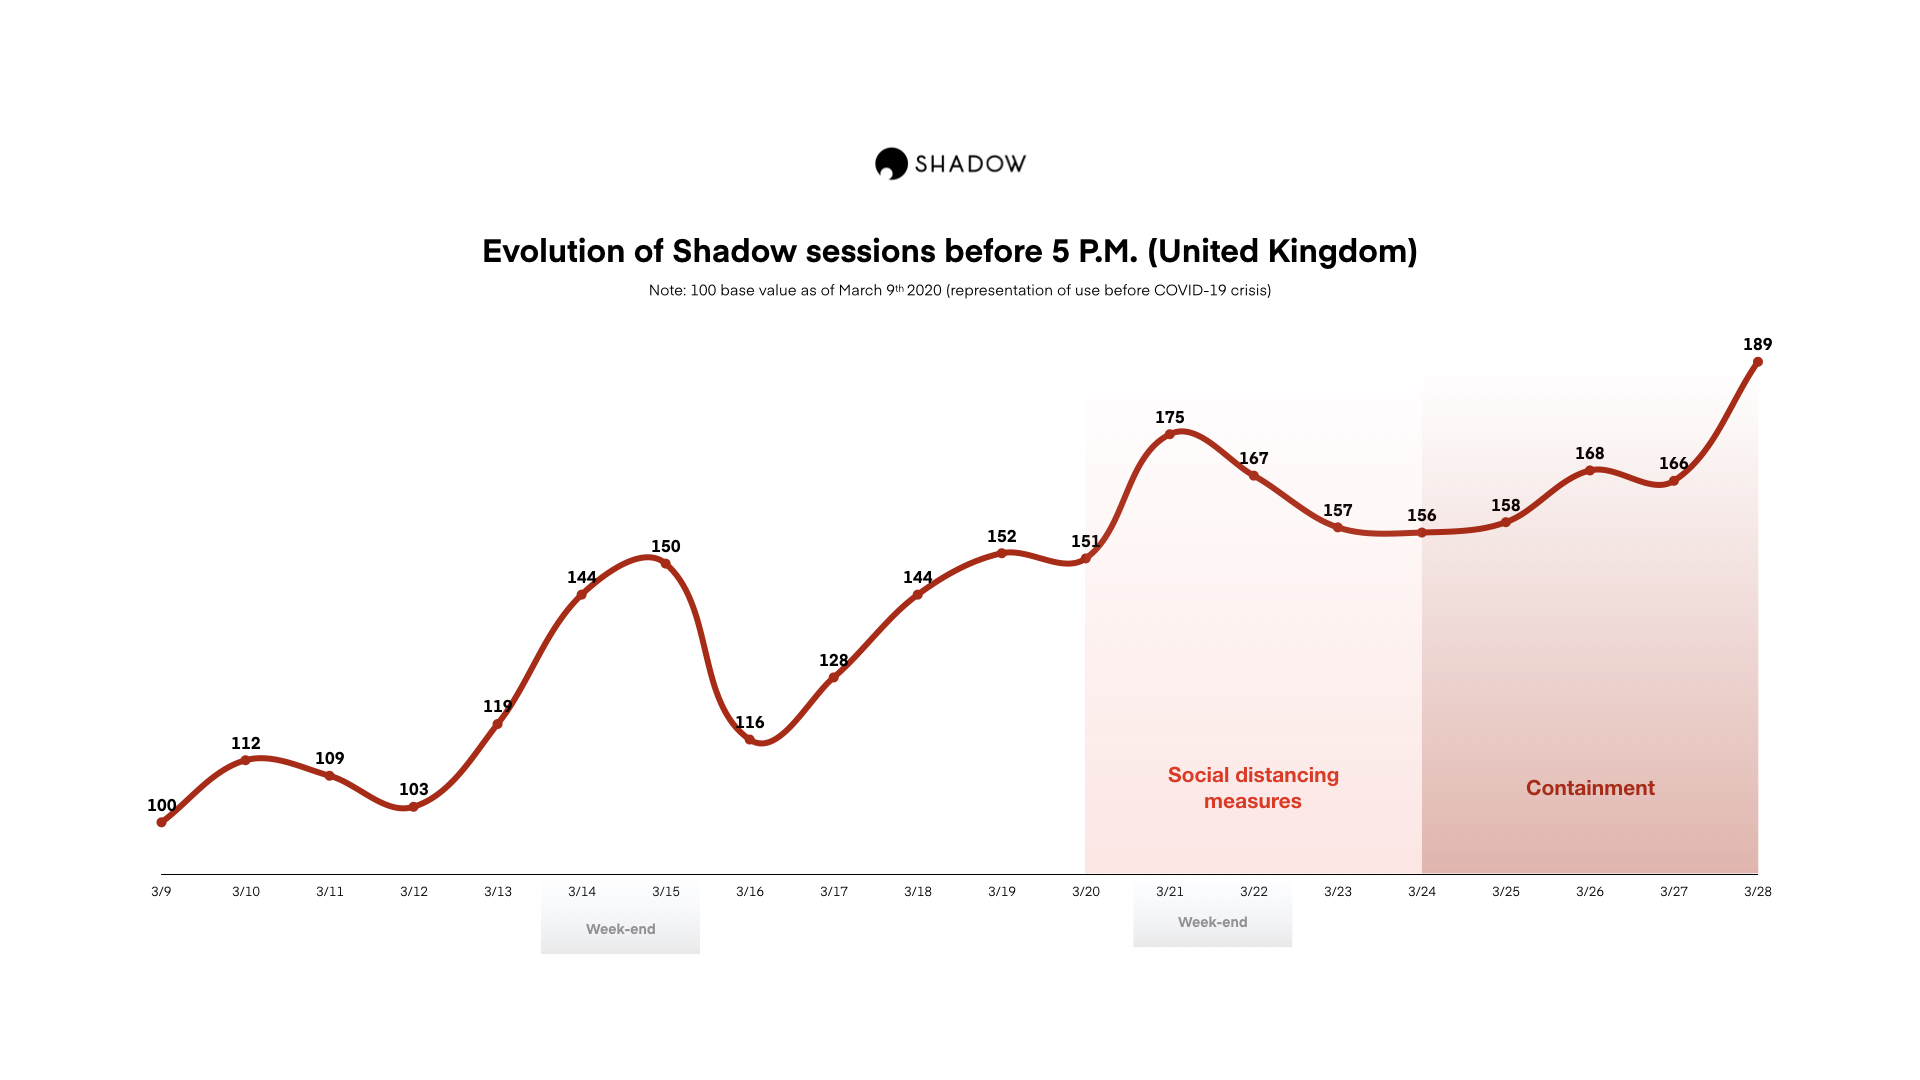 351230 evolution%20of%20shadow%20sessions%20before%205pm%20in%20the%20uk 6d53bb original 1585900600